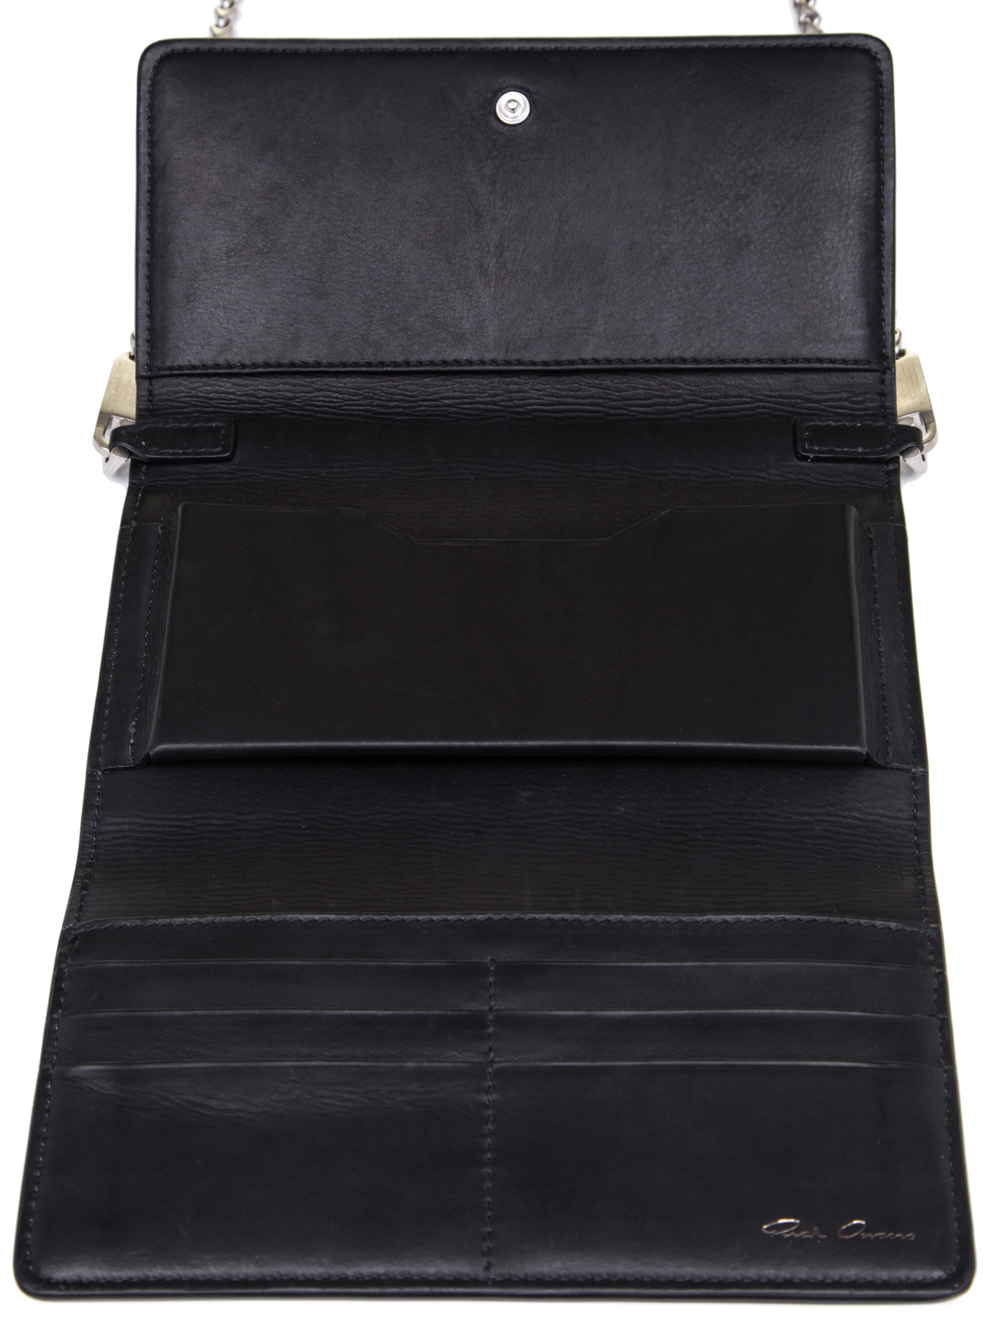 RICK OWENS SS19 BABEL PURSE WALLET IN BLACK BABY CALF LEATHER